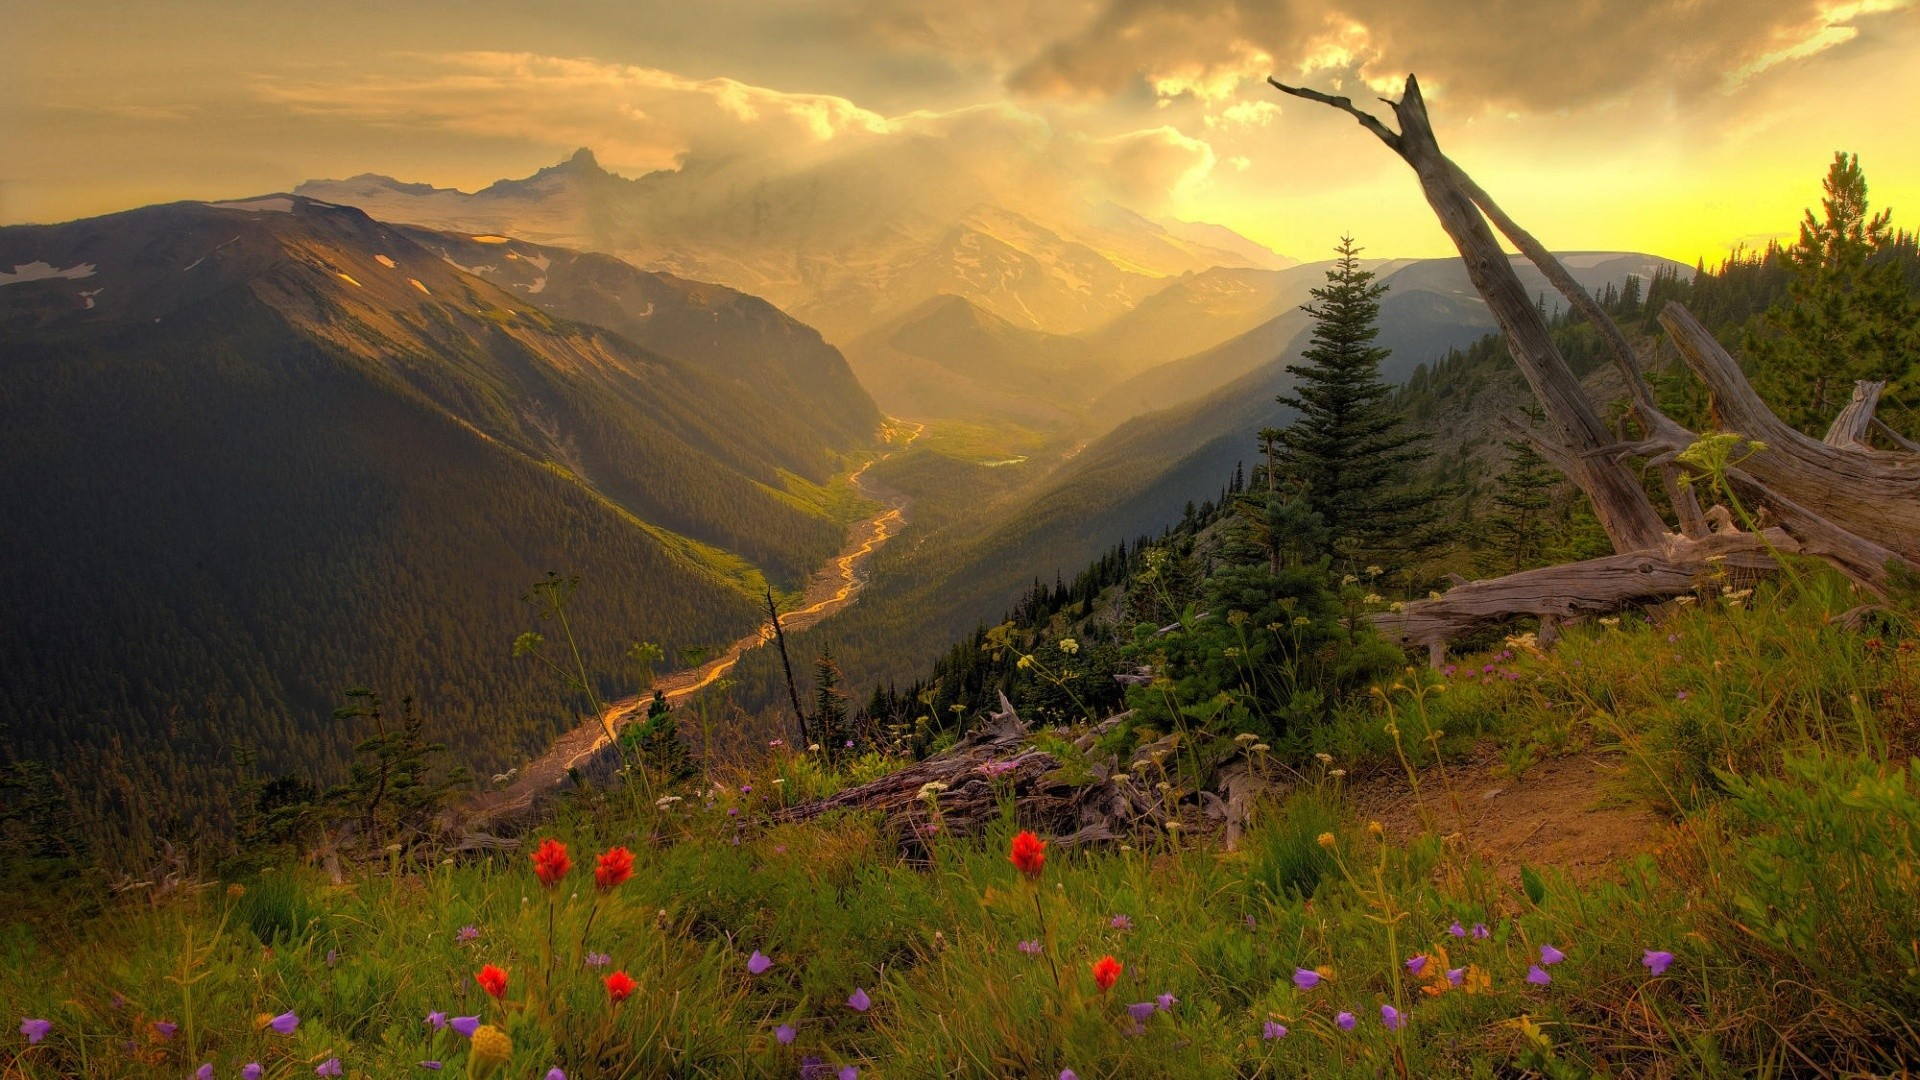 1920x1080 0  Beautiful landscape Wallpaper  Beautiful mountain  scenery desktop PC and Mac wallpaper